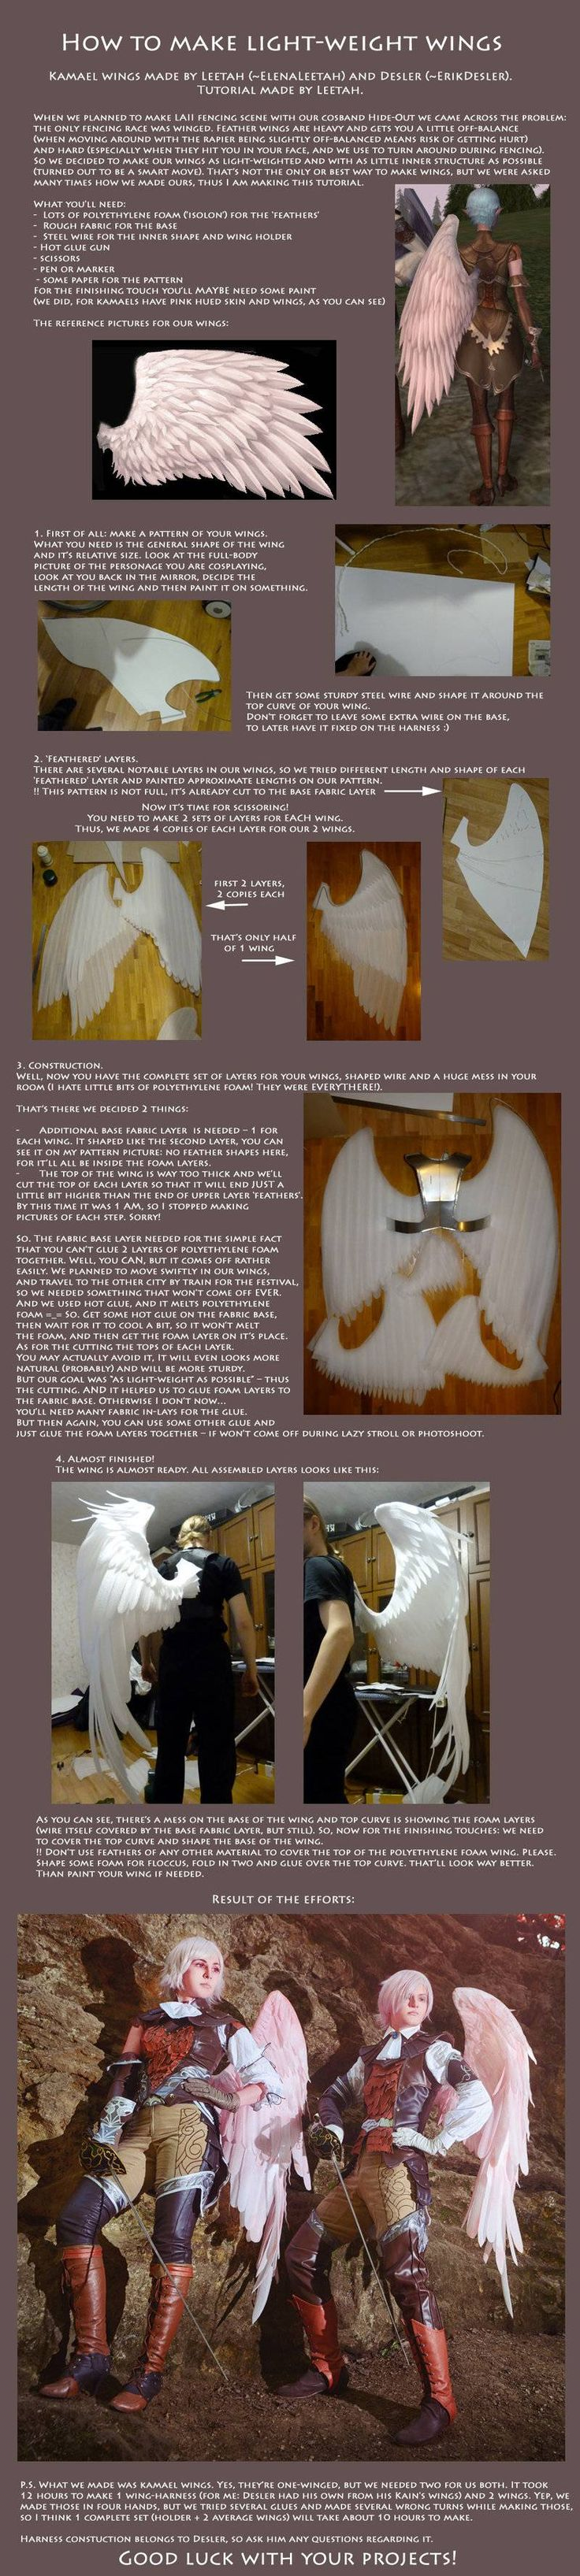 How to make light-weight wings (Kamael)